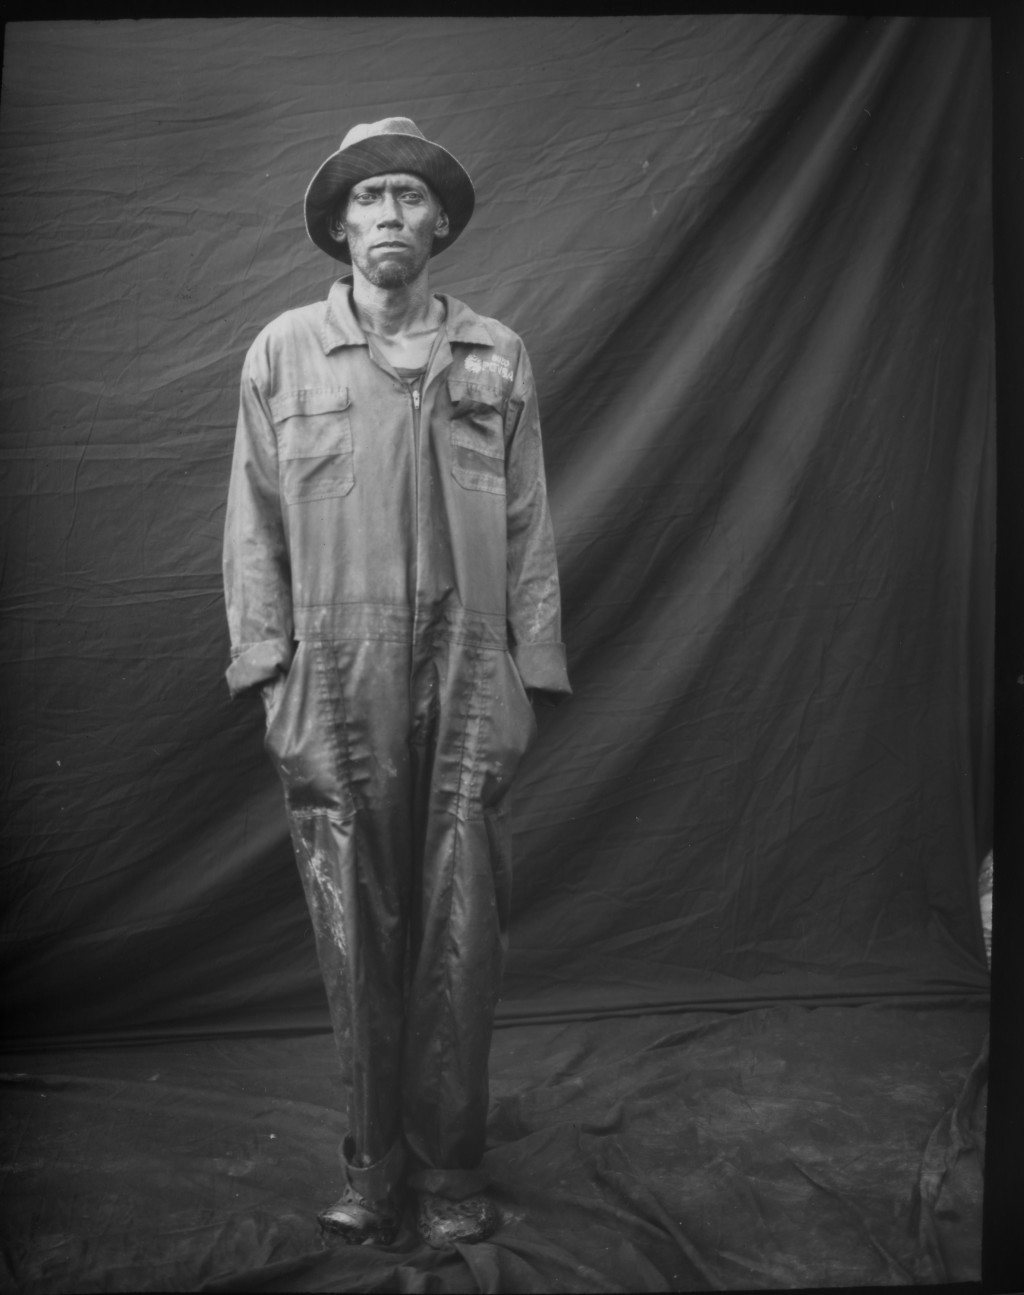 Former oil worker David Ortiz poses for a portrait in one of his old PDVSA uniforms, which he uses to work as a fisherman, after a day's work on oil-c...